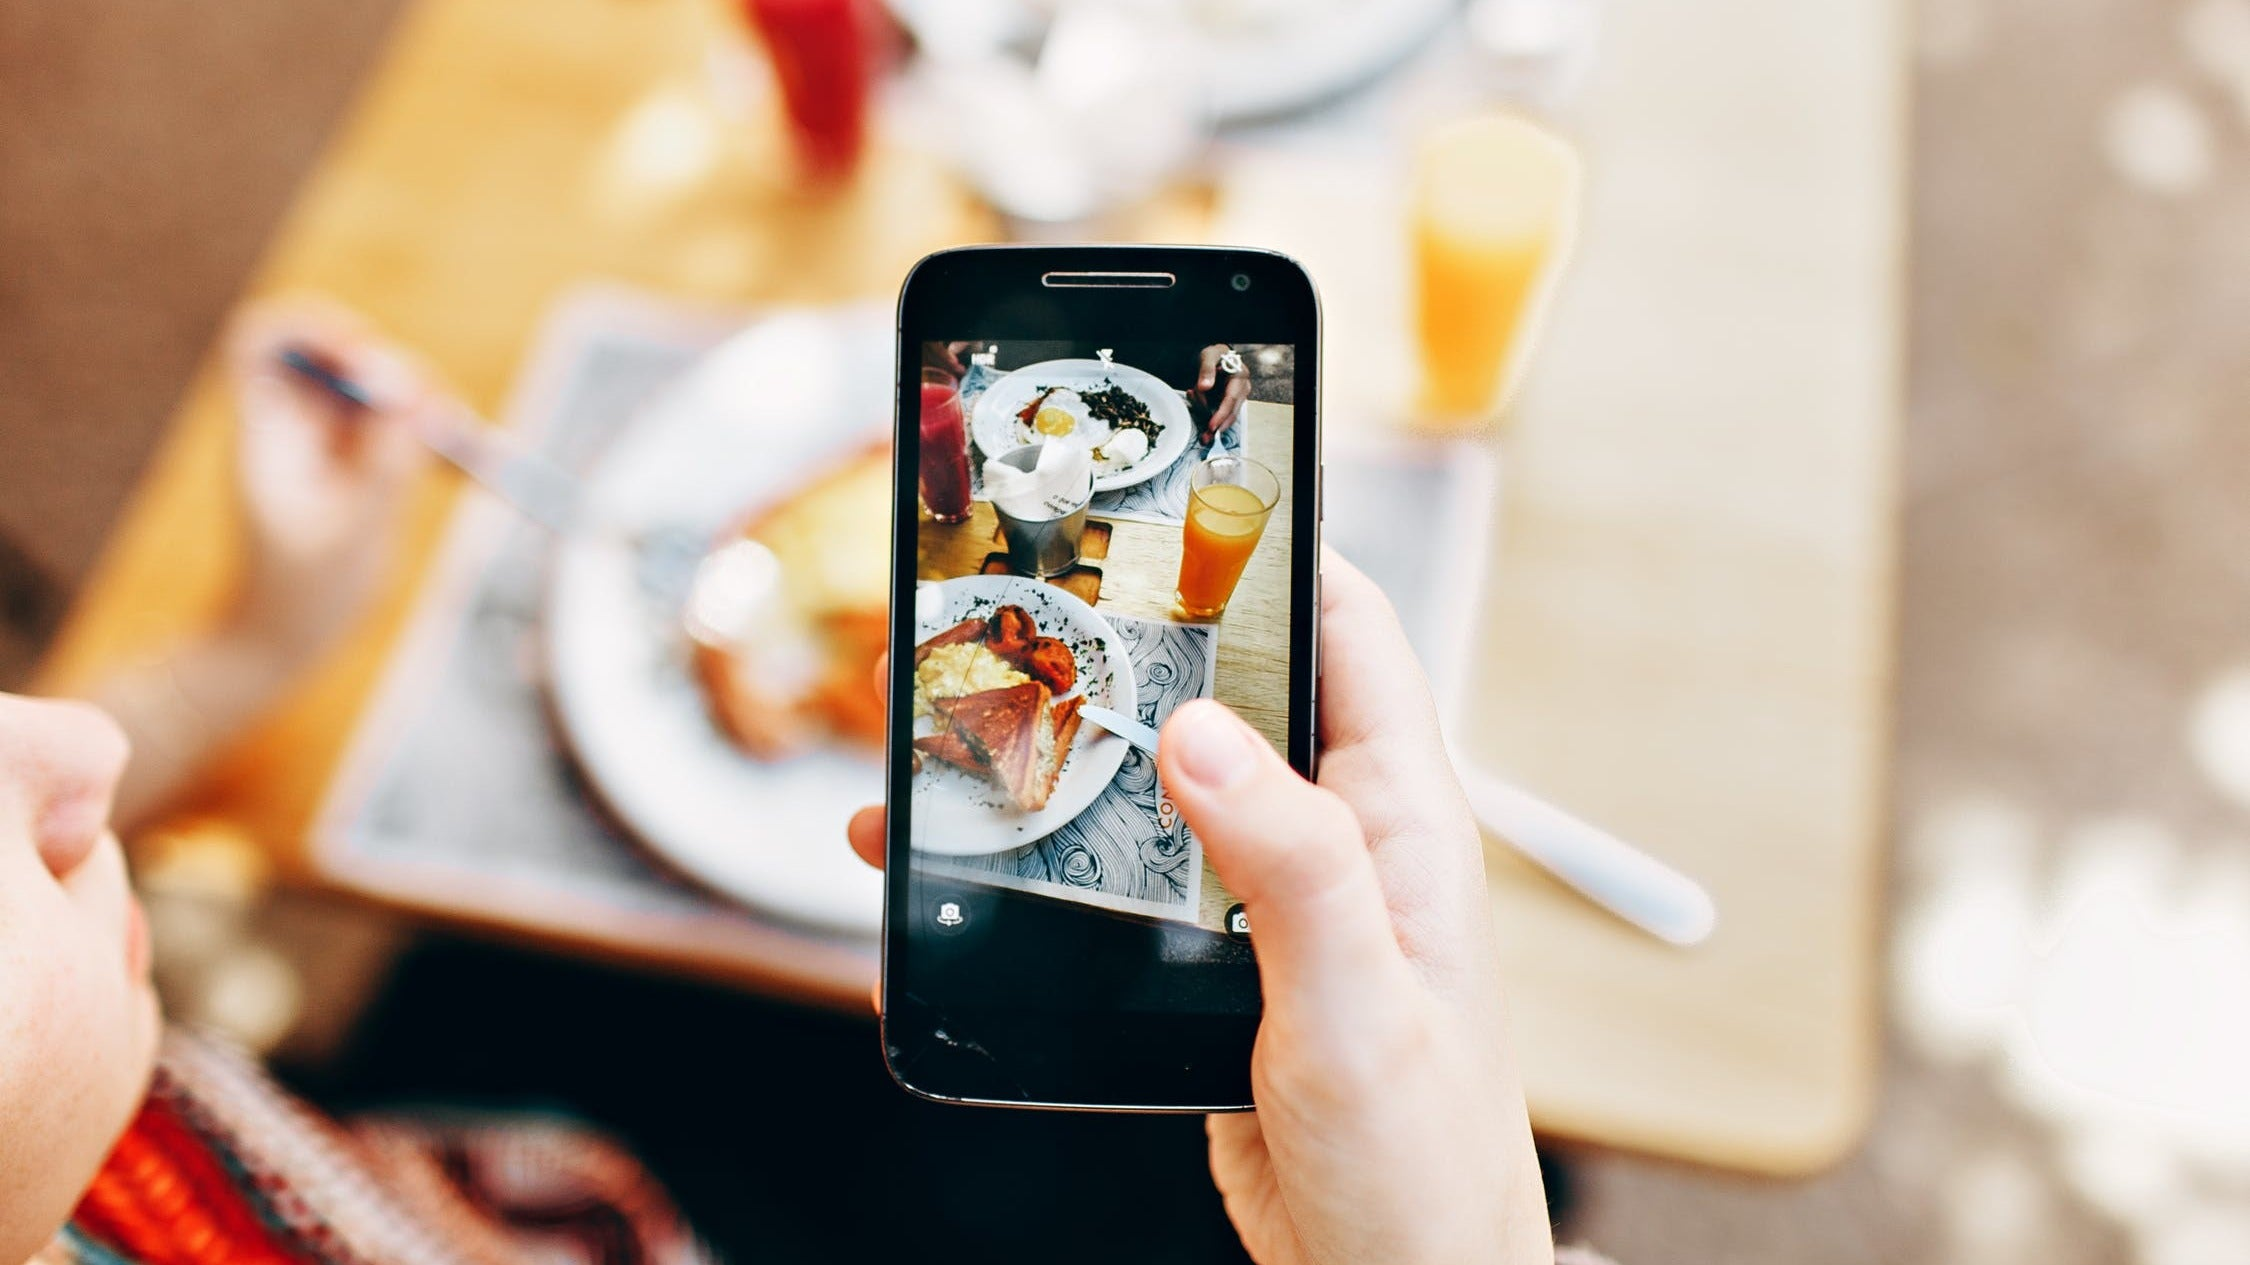 How To Make Your Instagram Posts Accessible To People With Visual Impairments